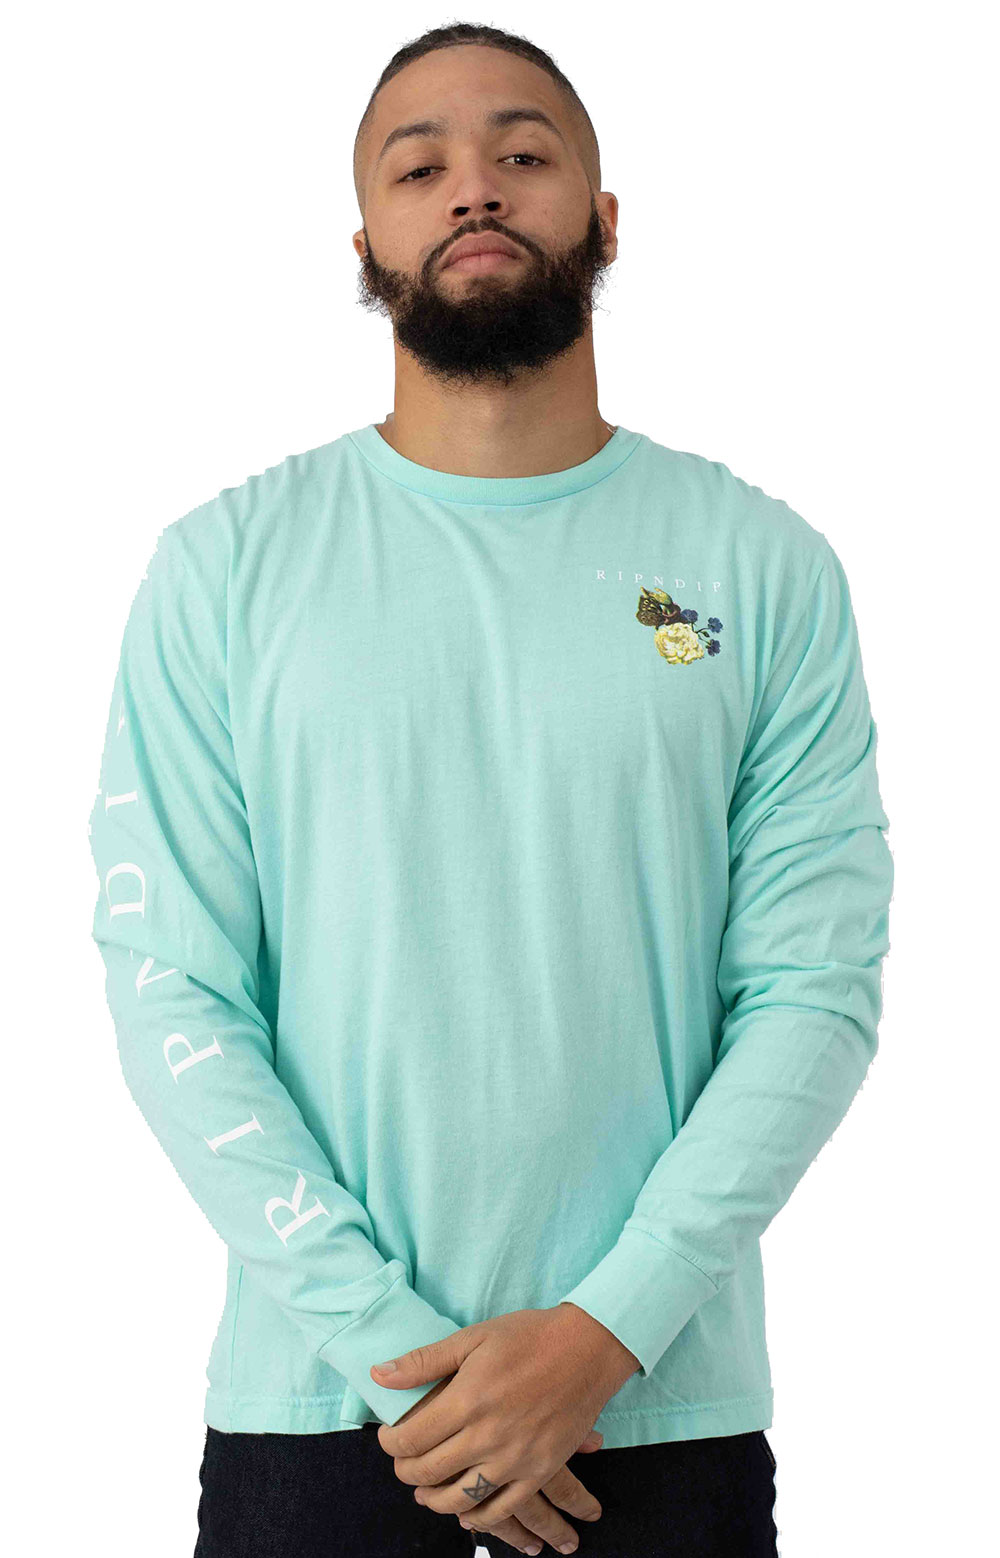 Heavenly Bodies L/S Shirt - Baby Blue 2